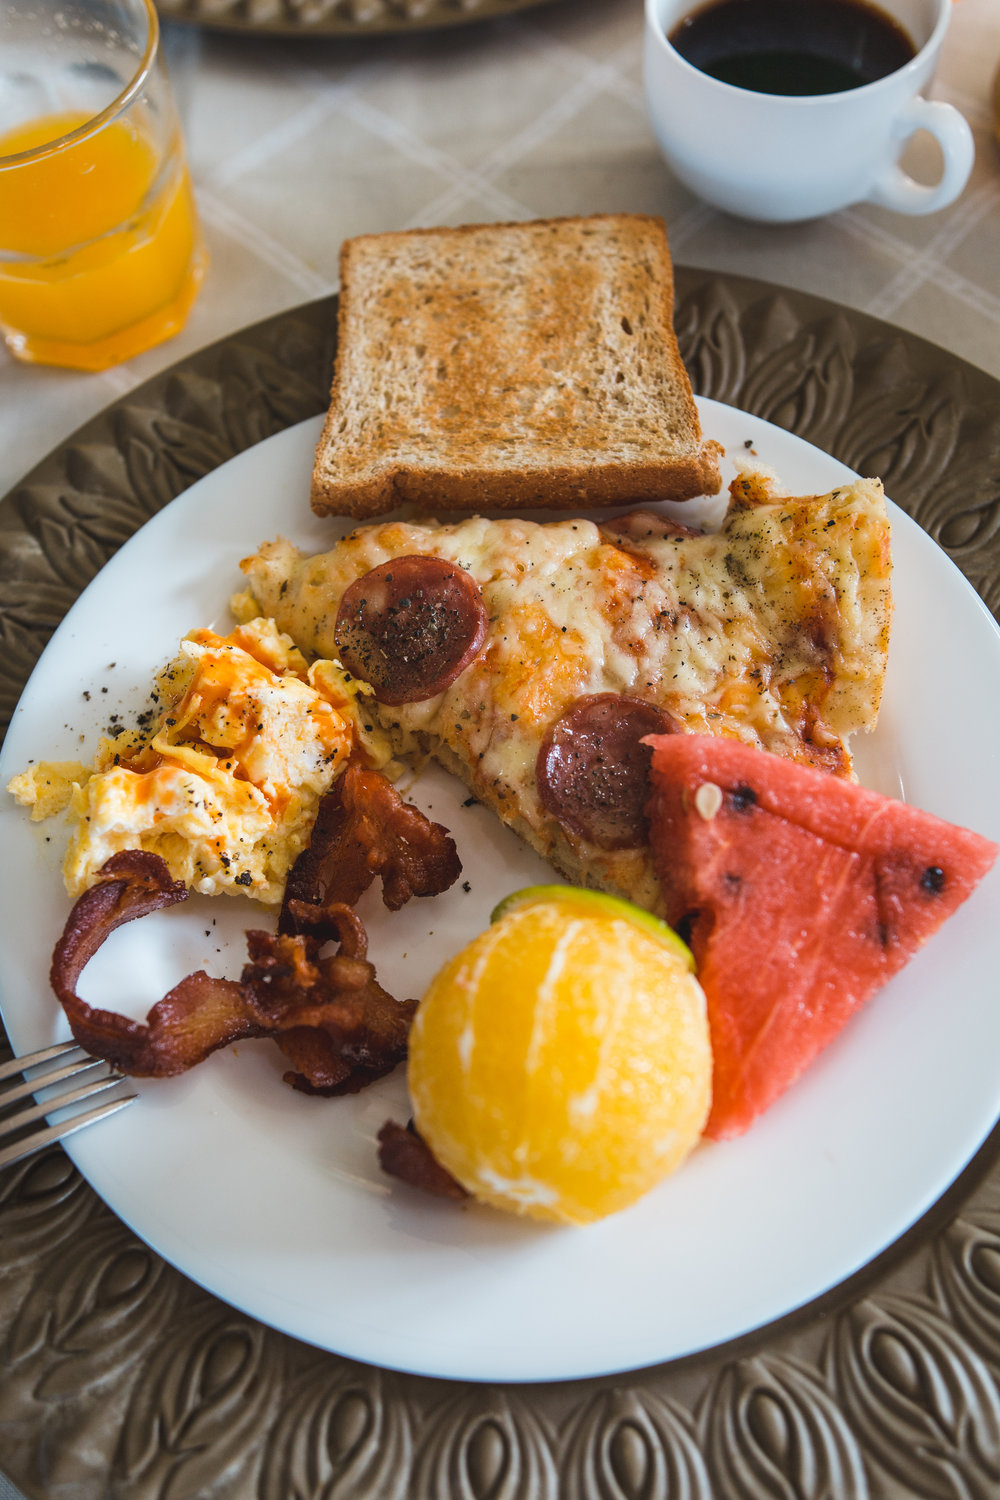 A typical breakfast, with fresh fruit, bacon, breakfast pizza, eggs, and the best coffee and juice on can drink!